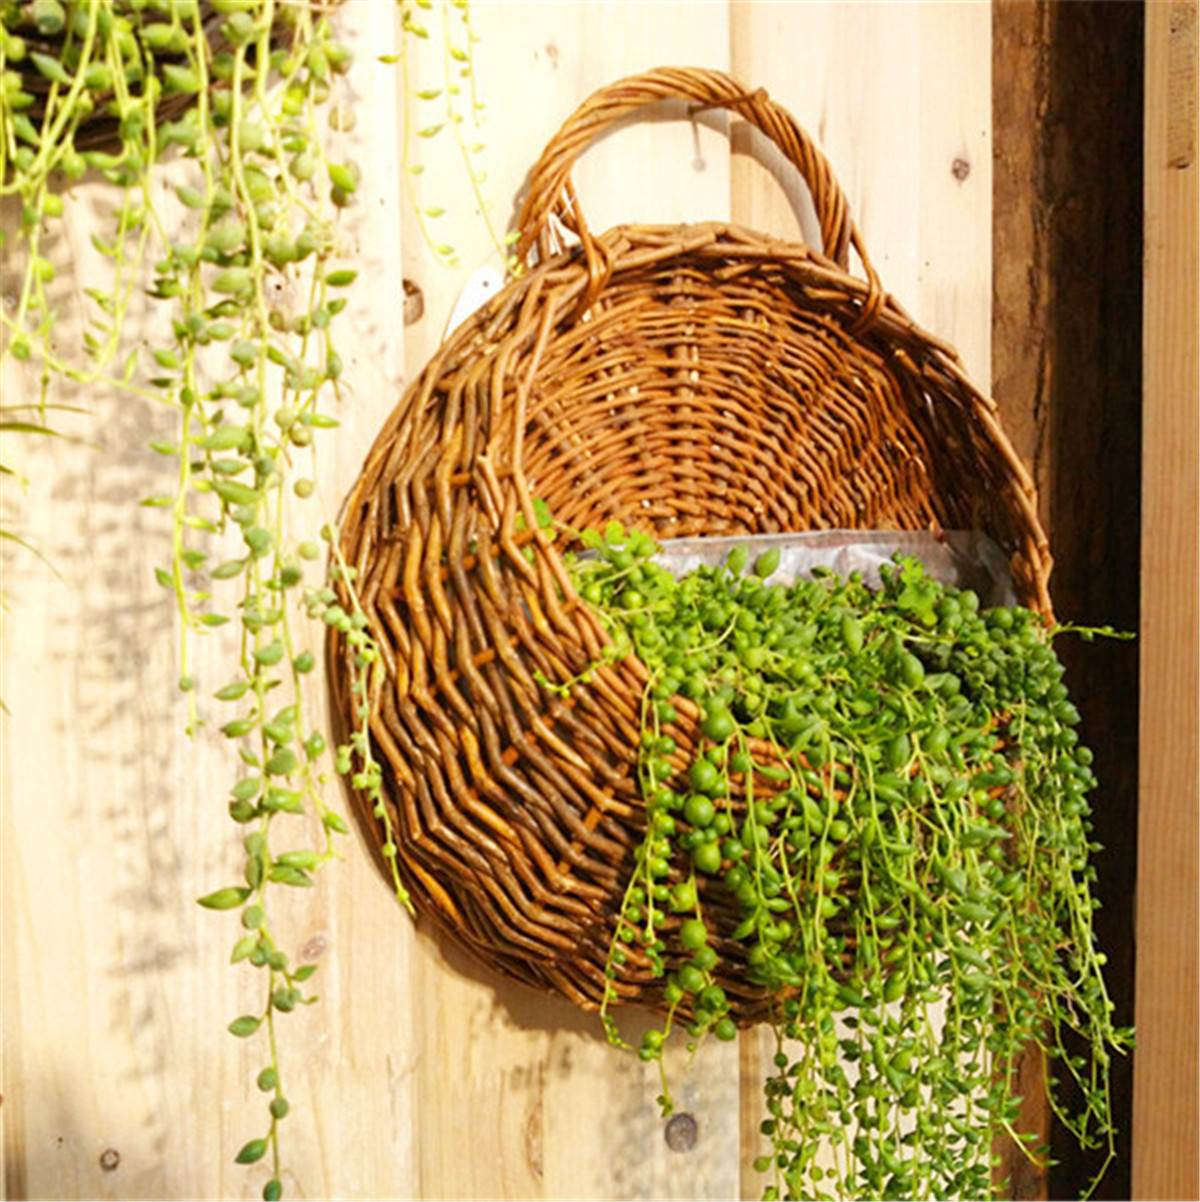 Rattan Flower Baskets : Rattan flower baskets wall decor hanging pot for